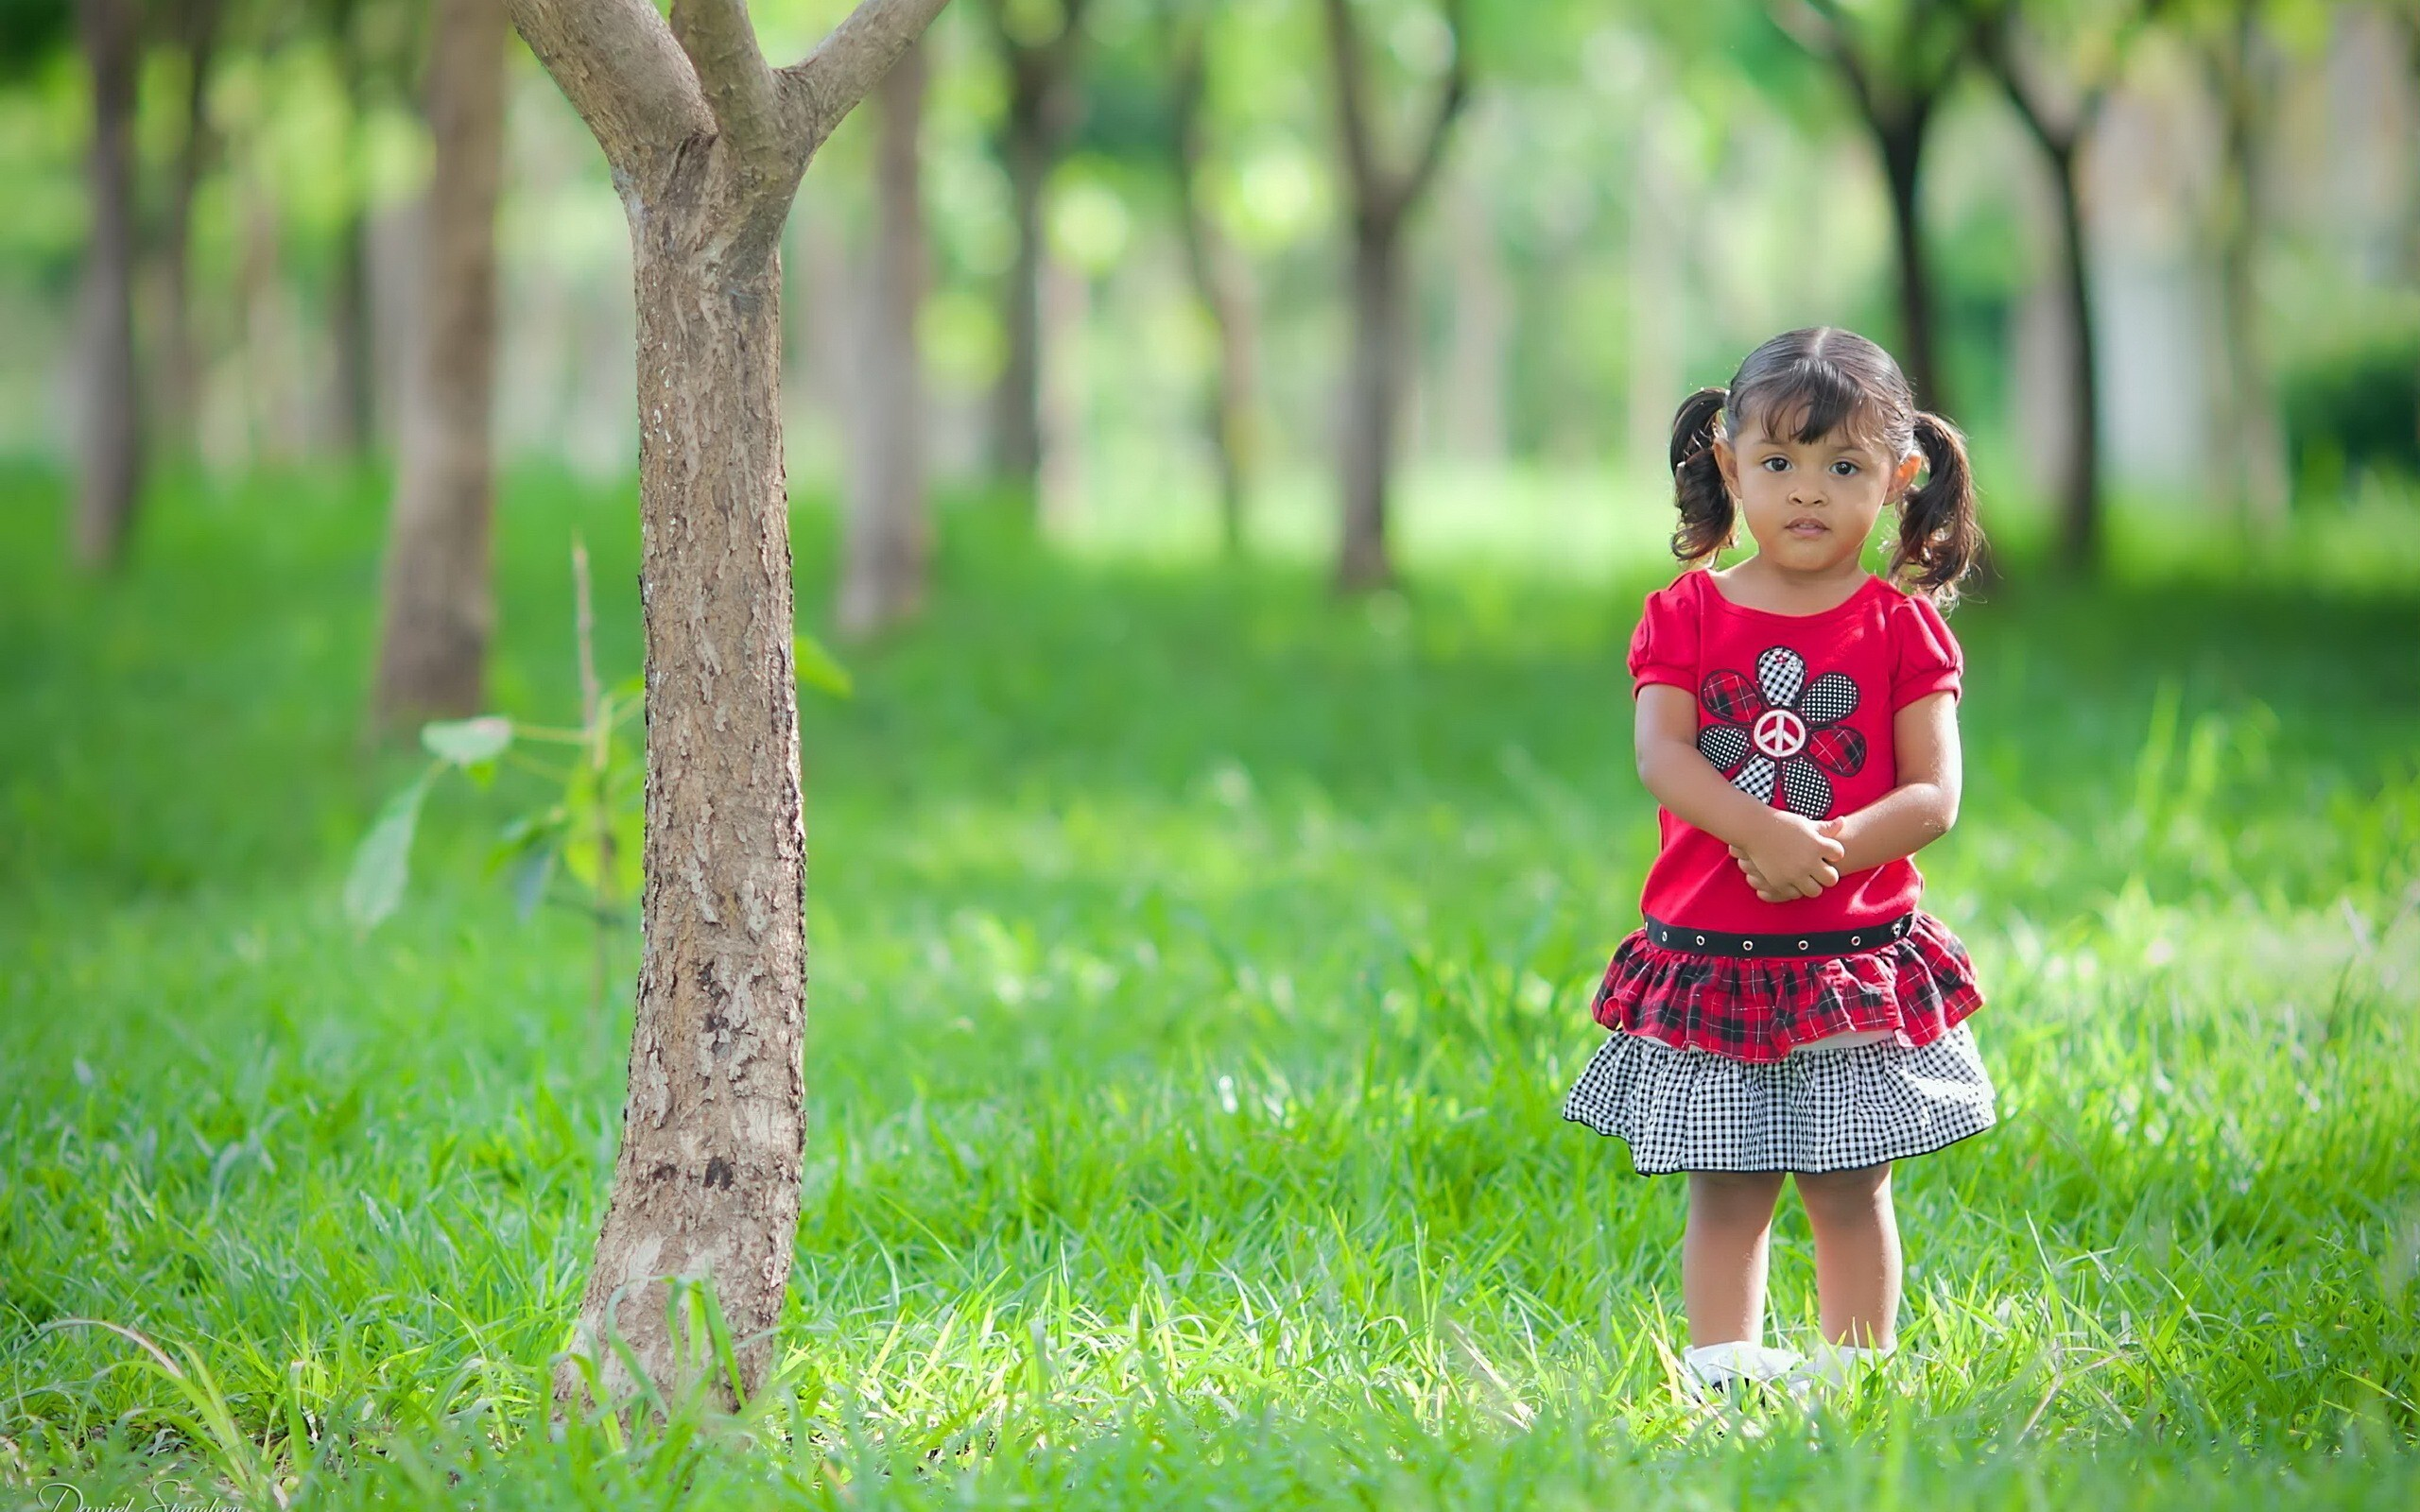 Beautiful cute little girl child standing silently in garden beautiful cute little girl child standing silently in garden photos hd wallpapers voltagebd Choice Image